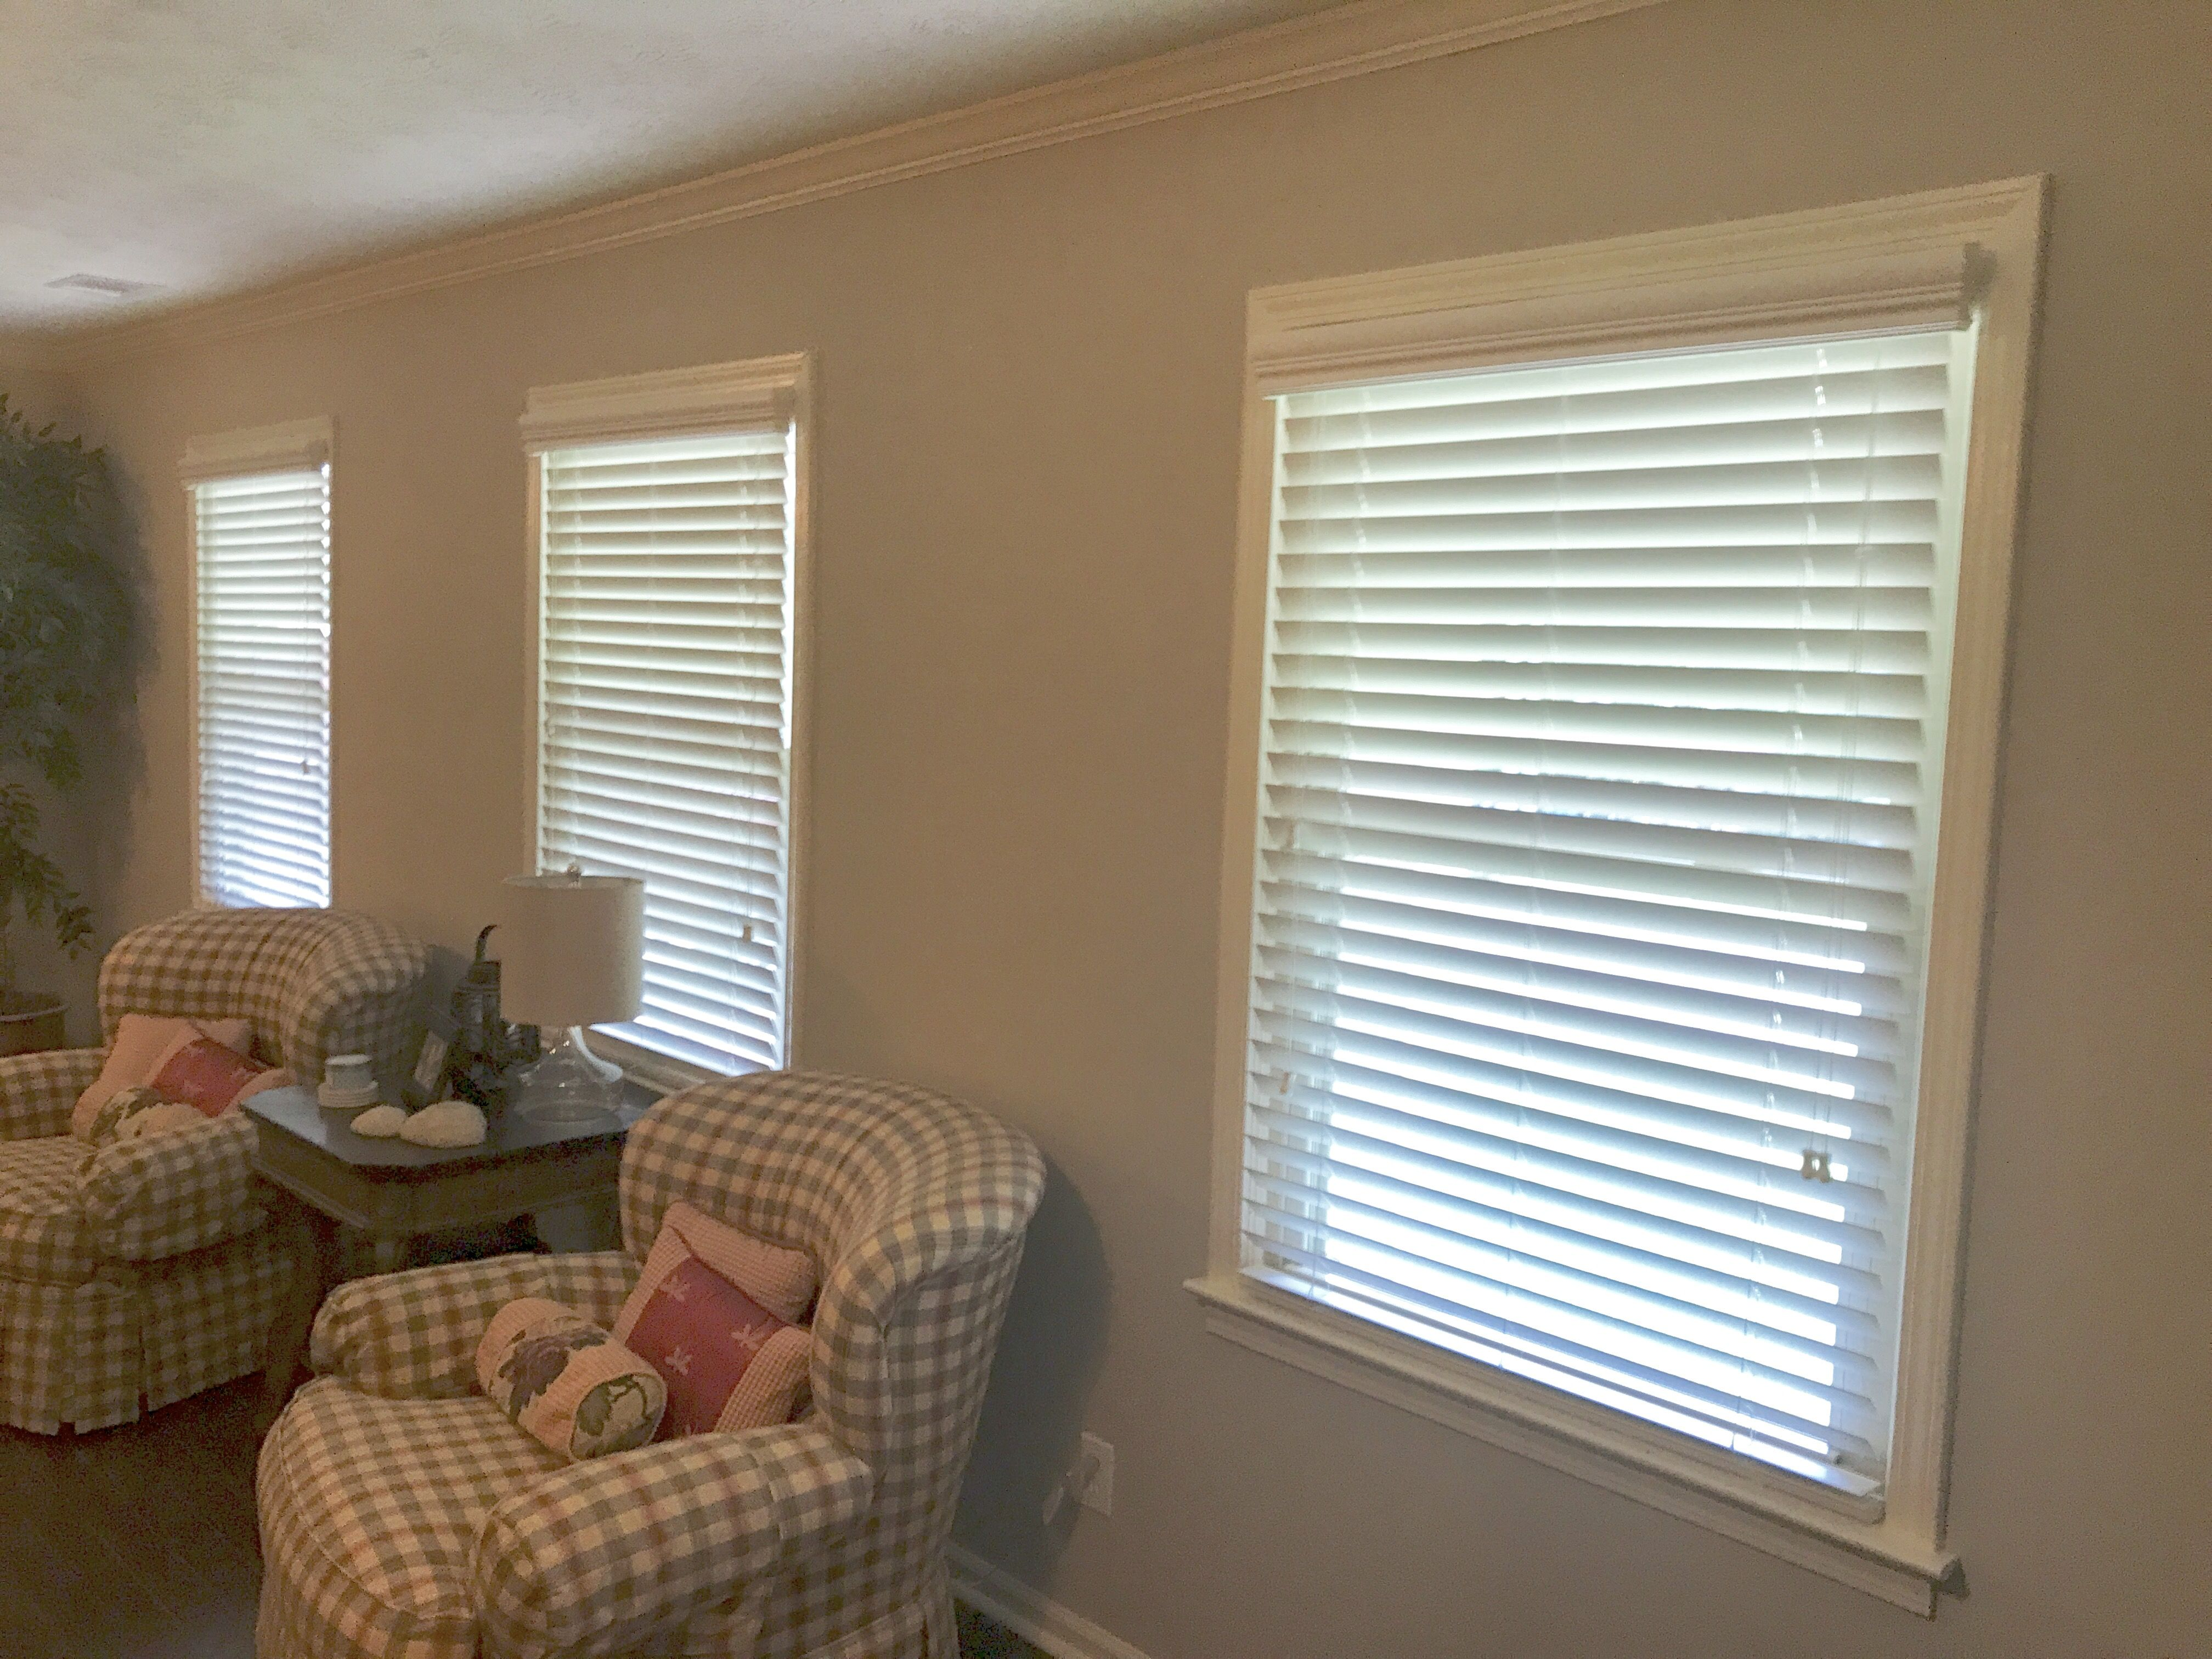 by treatments cold savannah blinds light brockschmidt room traditional showhouse hunter dining control heat shutters shades sheers variable pin custom provide home insulation window douglas against